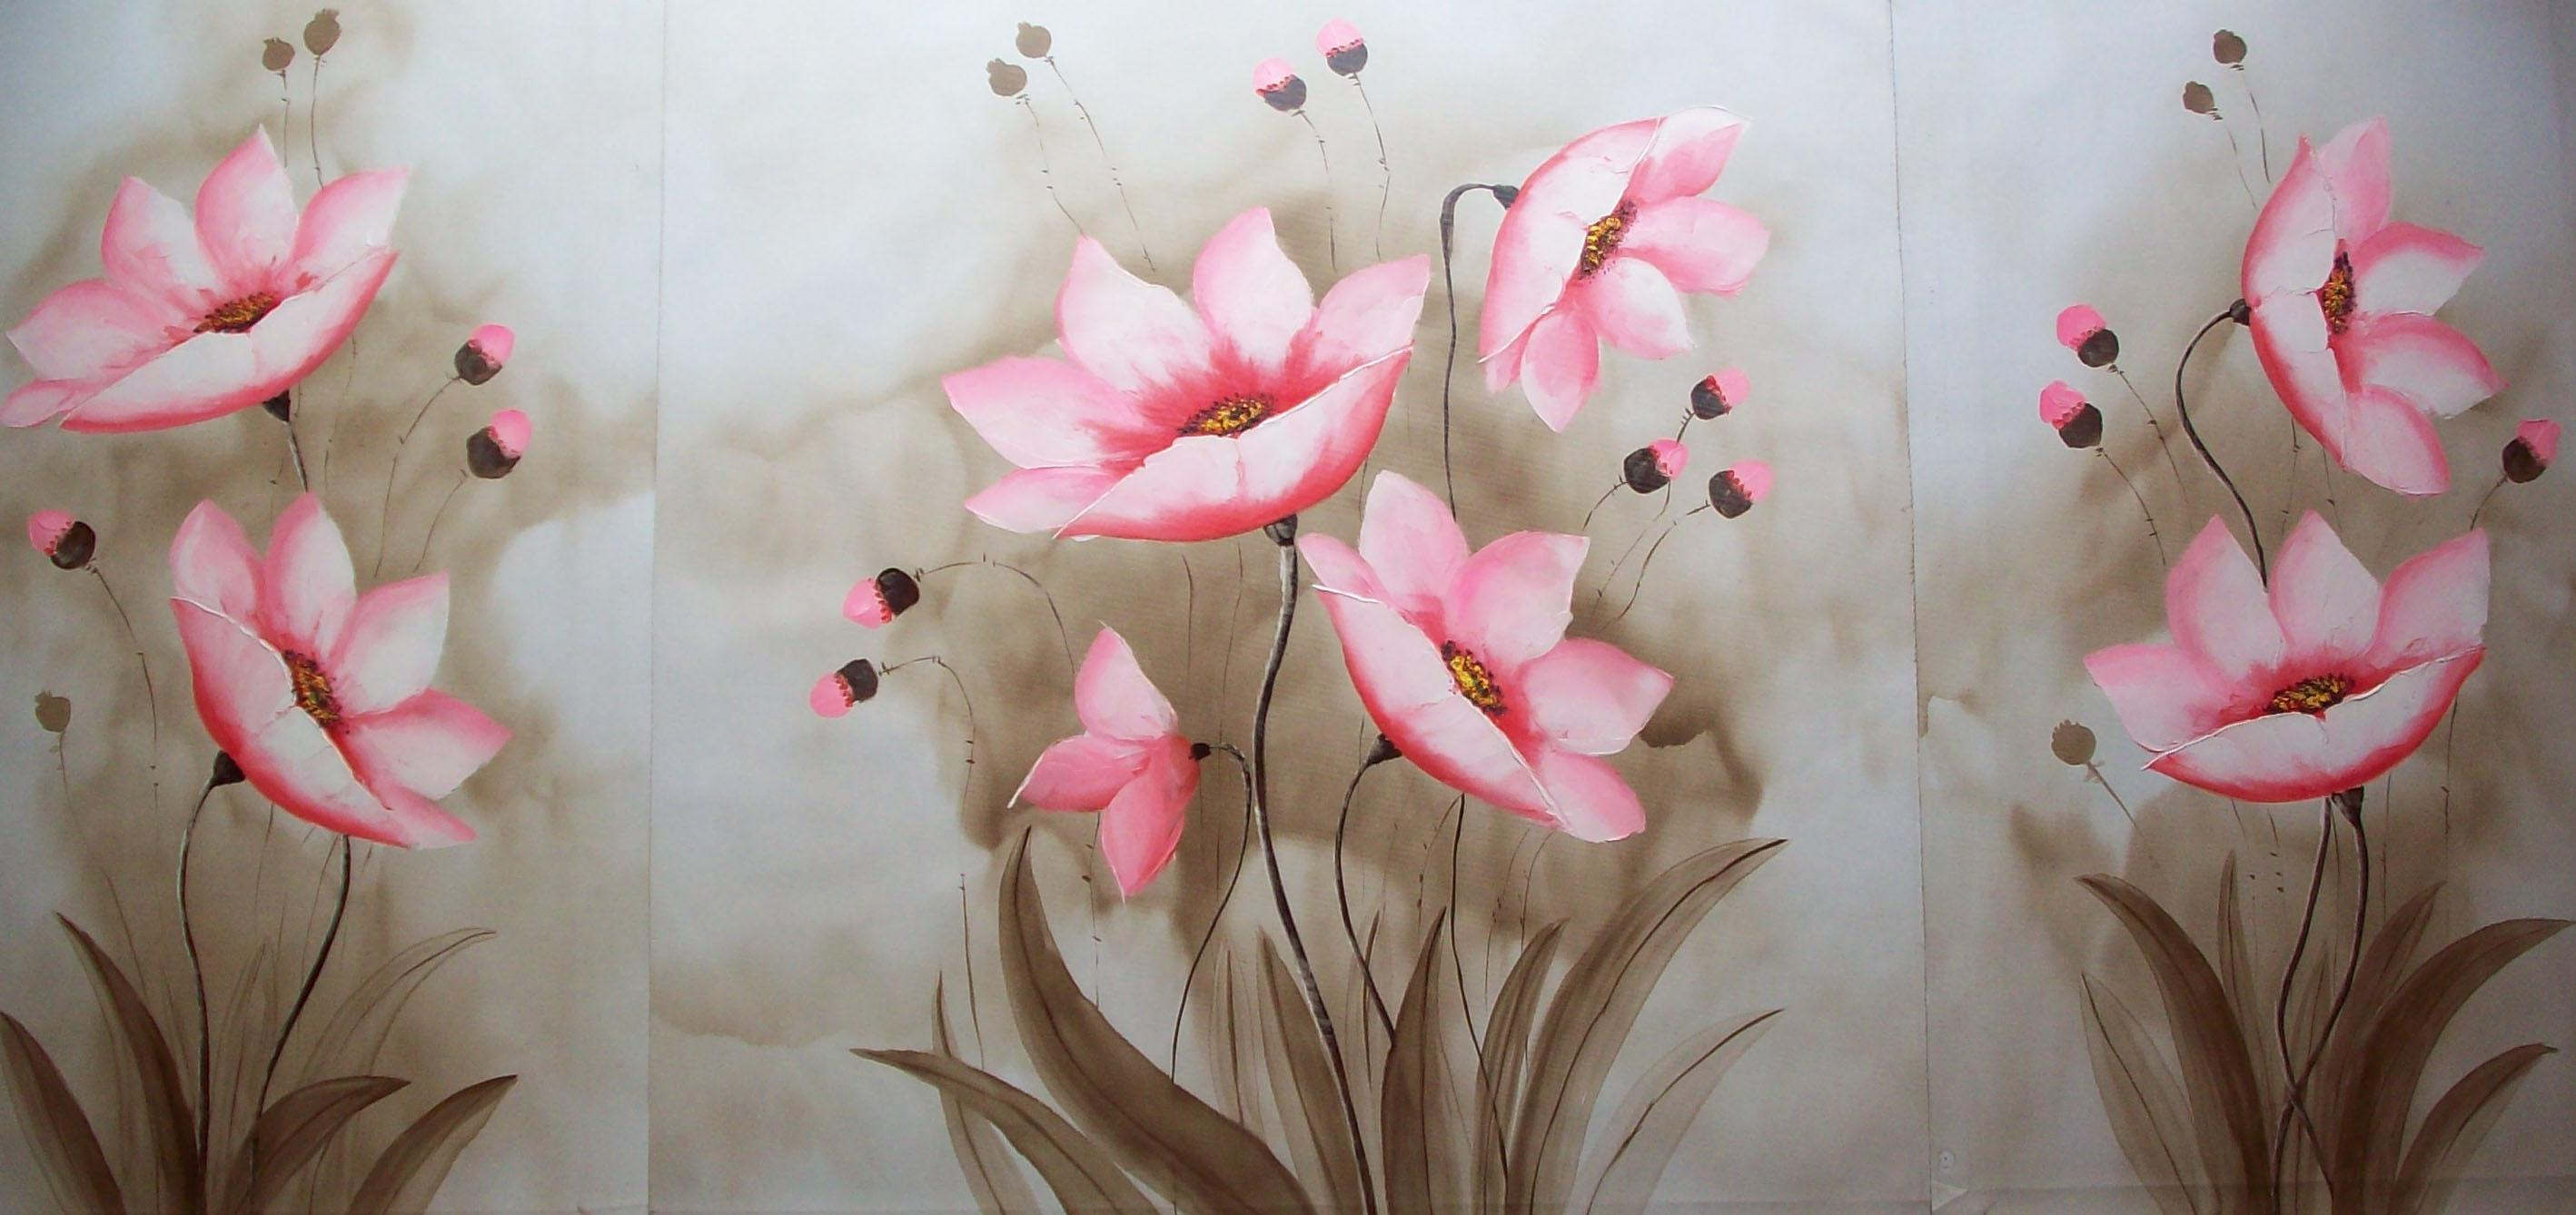 2019 Impression Group Oil Painting Nice Pink Flowers In Lake